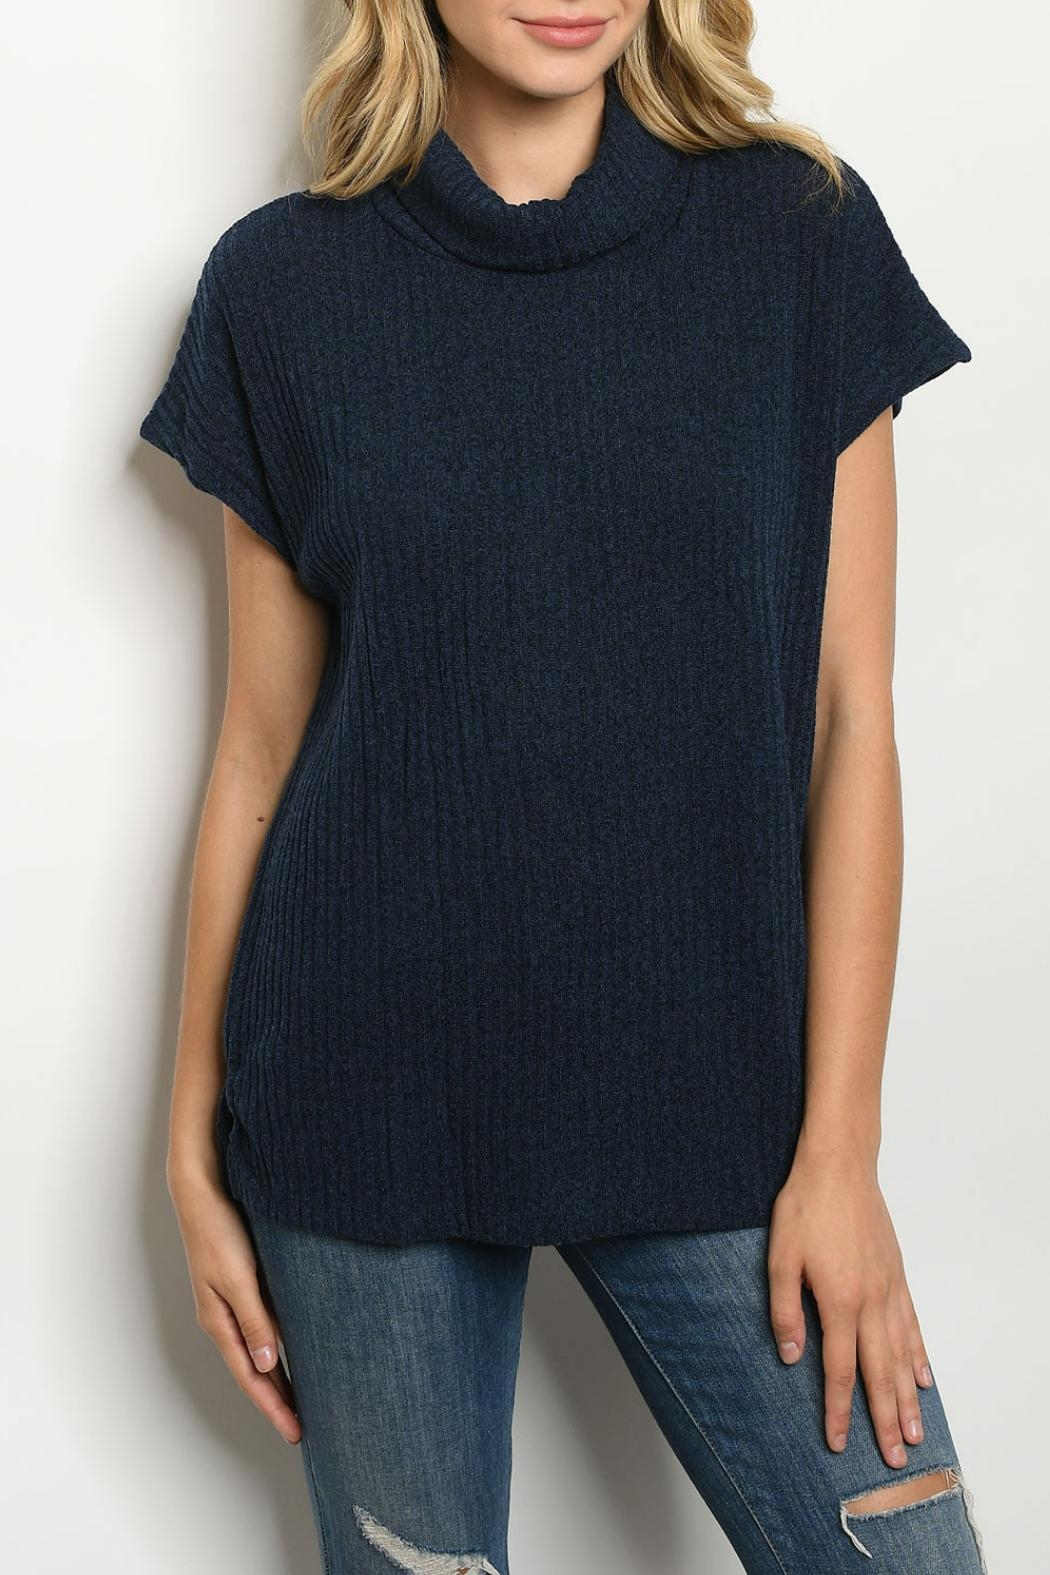 Ginger G Navy Cowl-Neck Top - Main Image